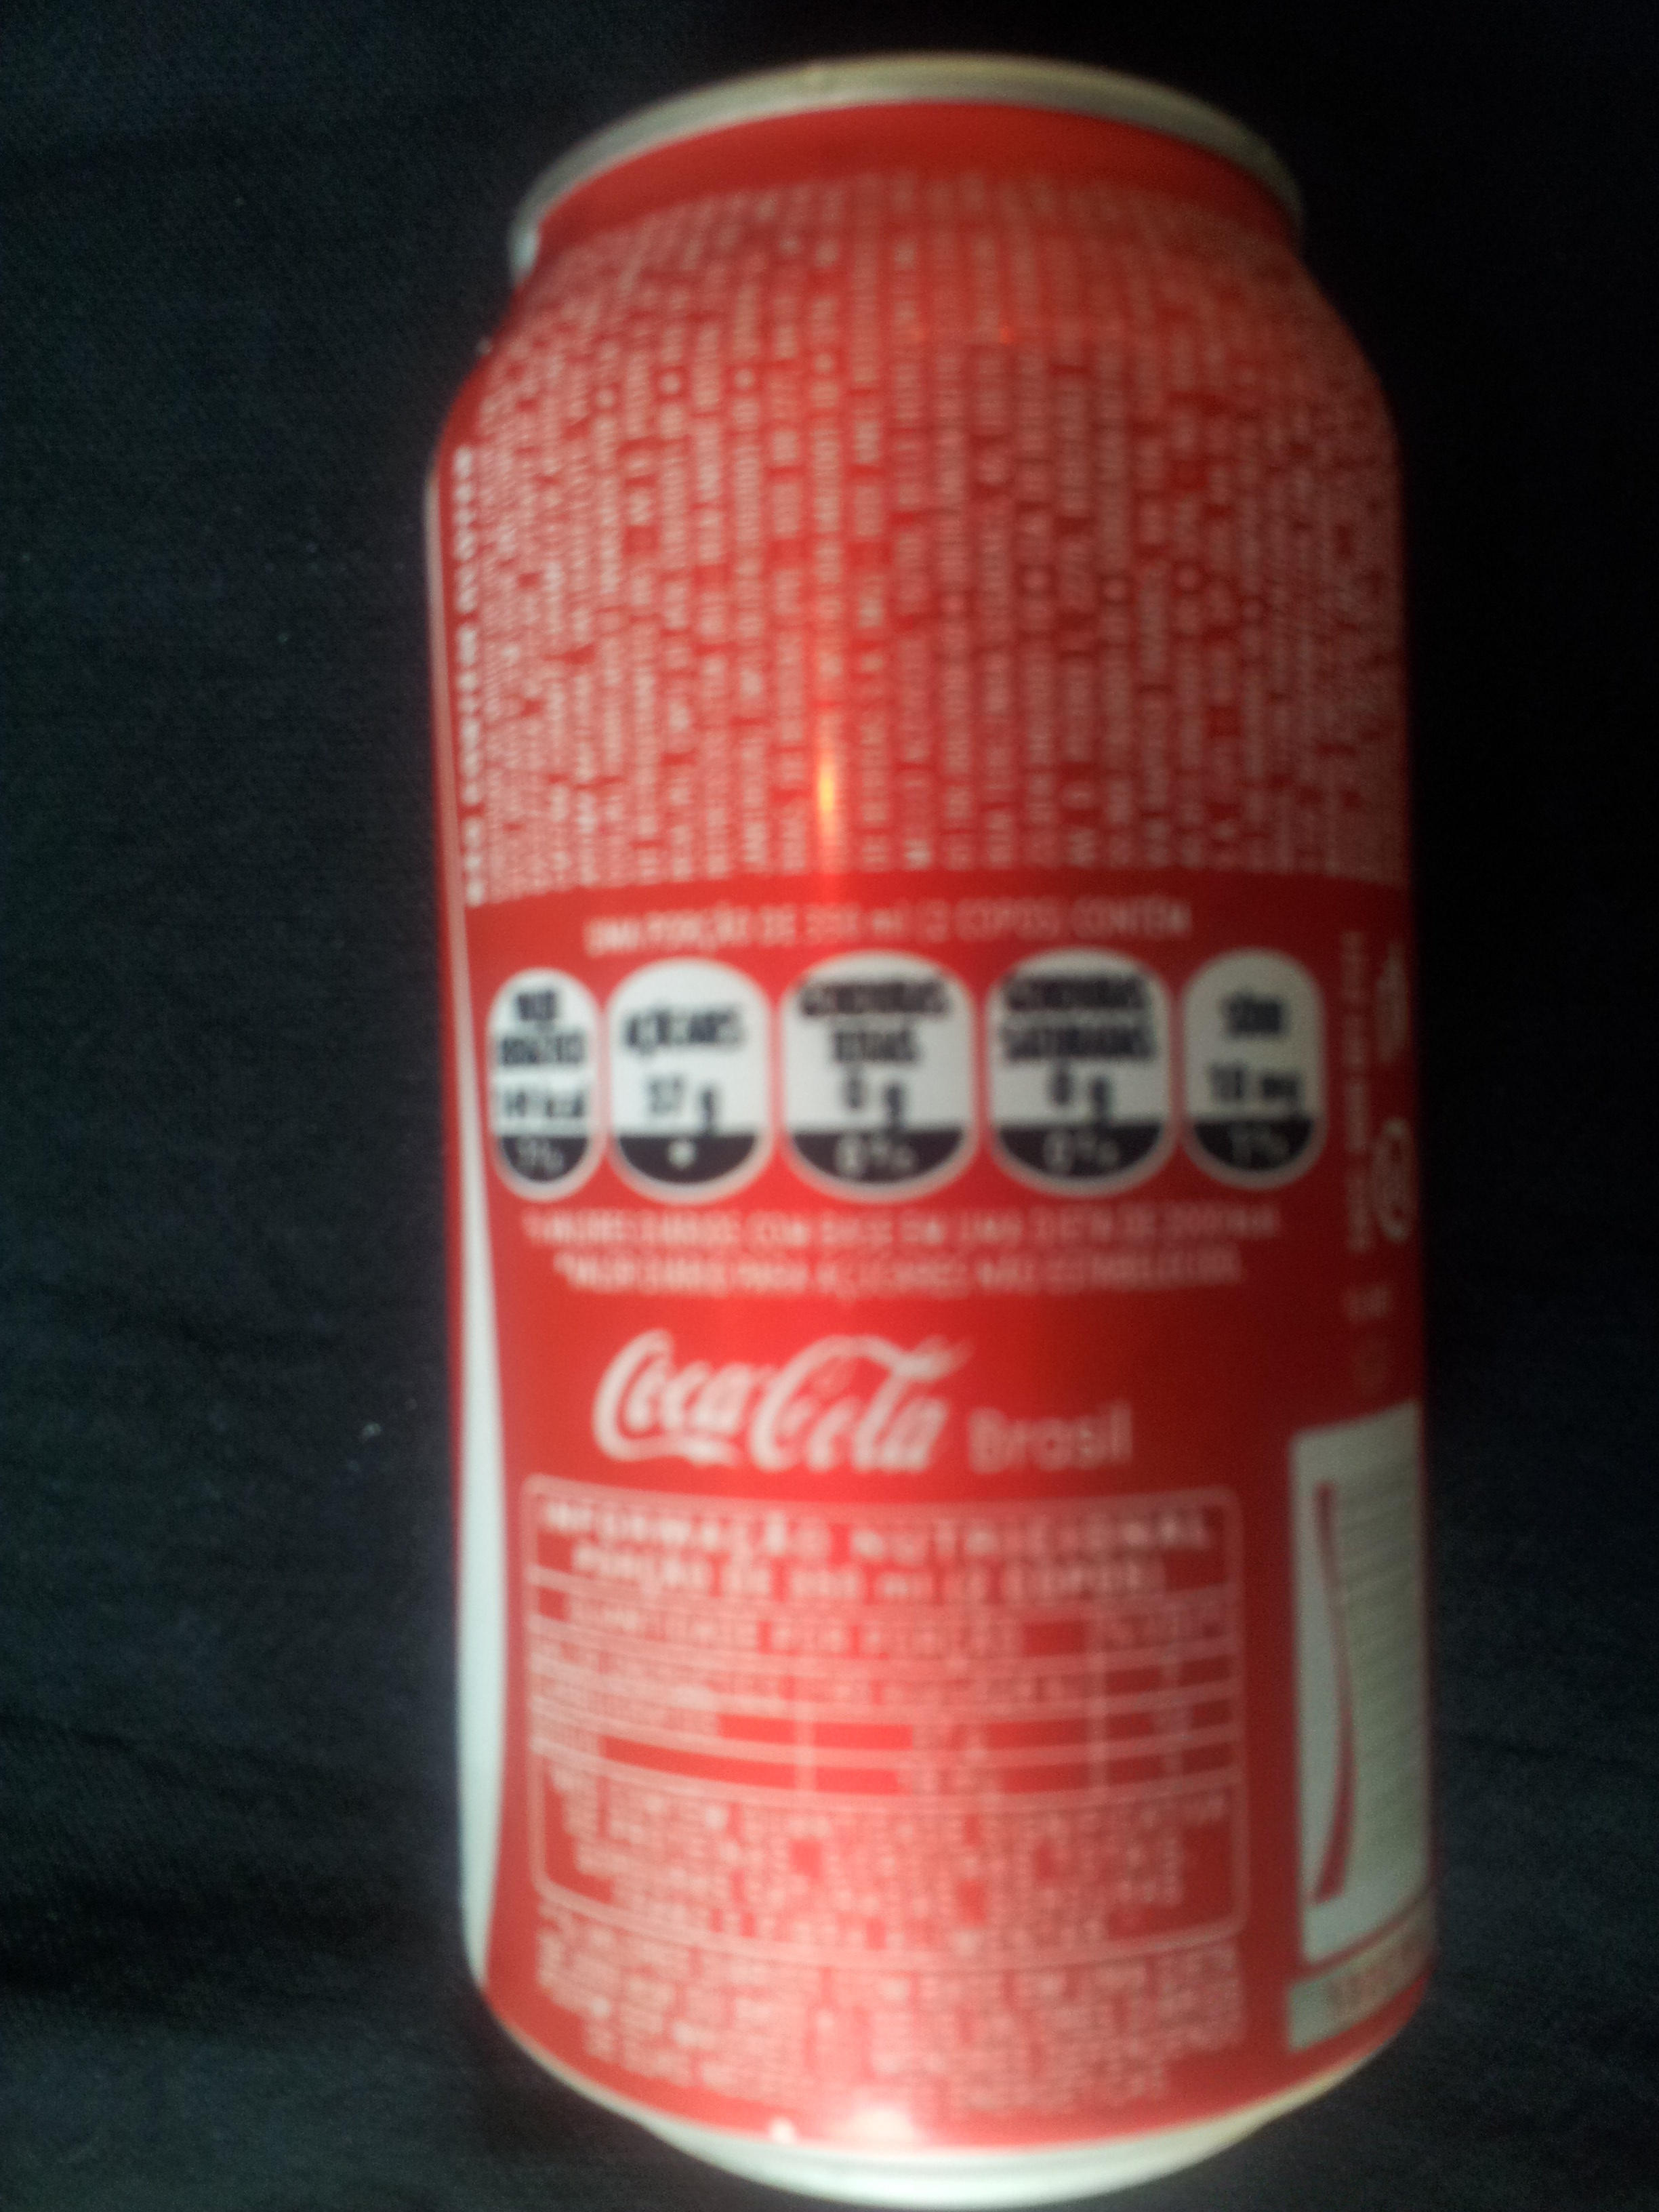 Coca-Cola - Ingredientes - pt